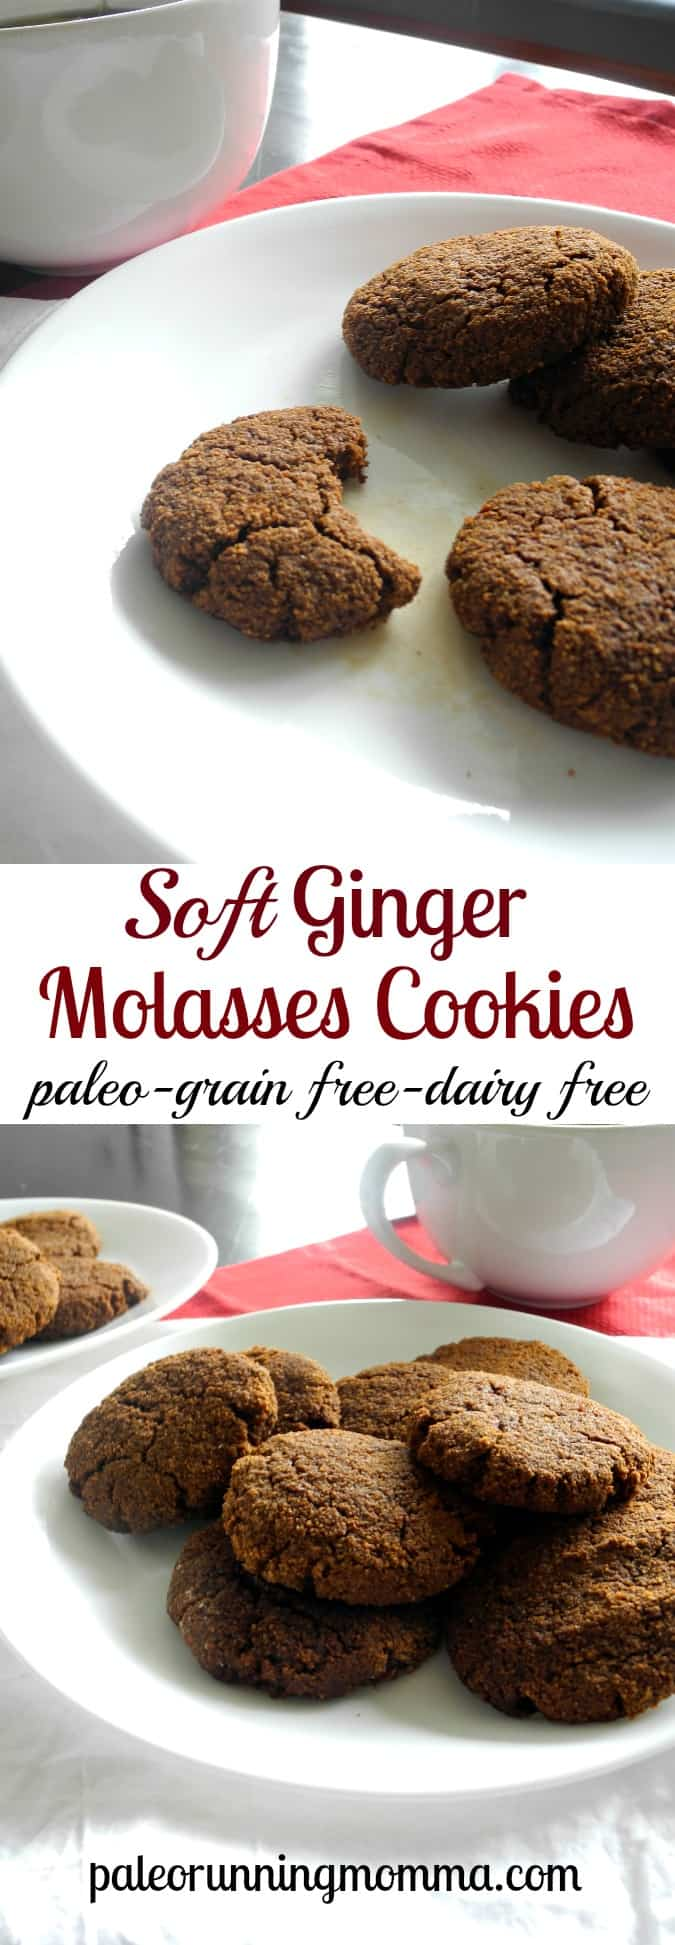 Soft Paleo Ginger Molasses Cookies - Grain free dairy free and paleo @paleorunmomma